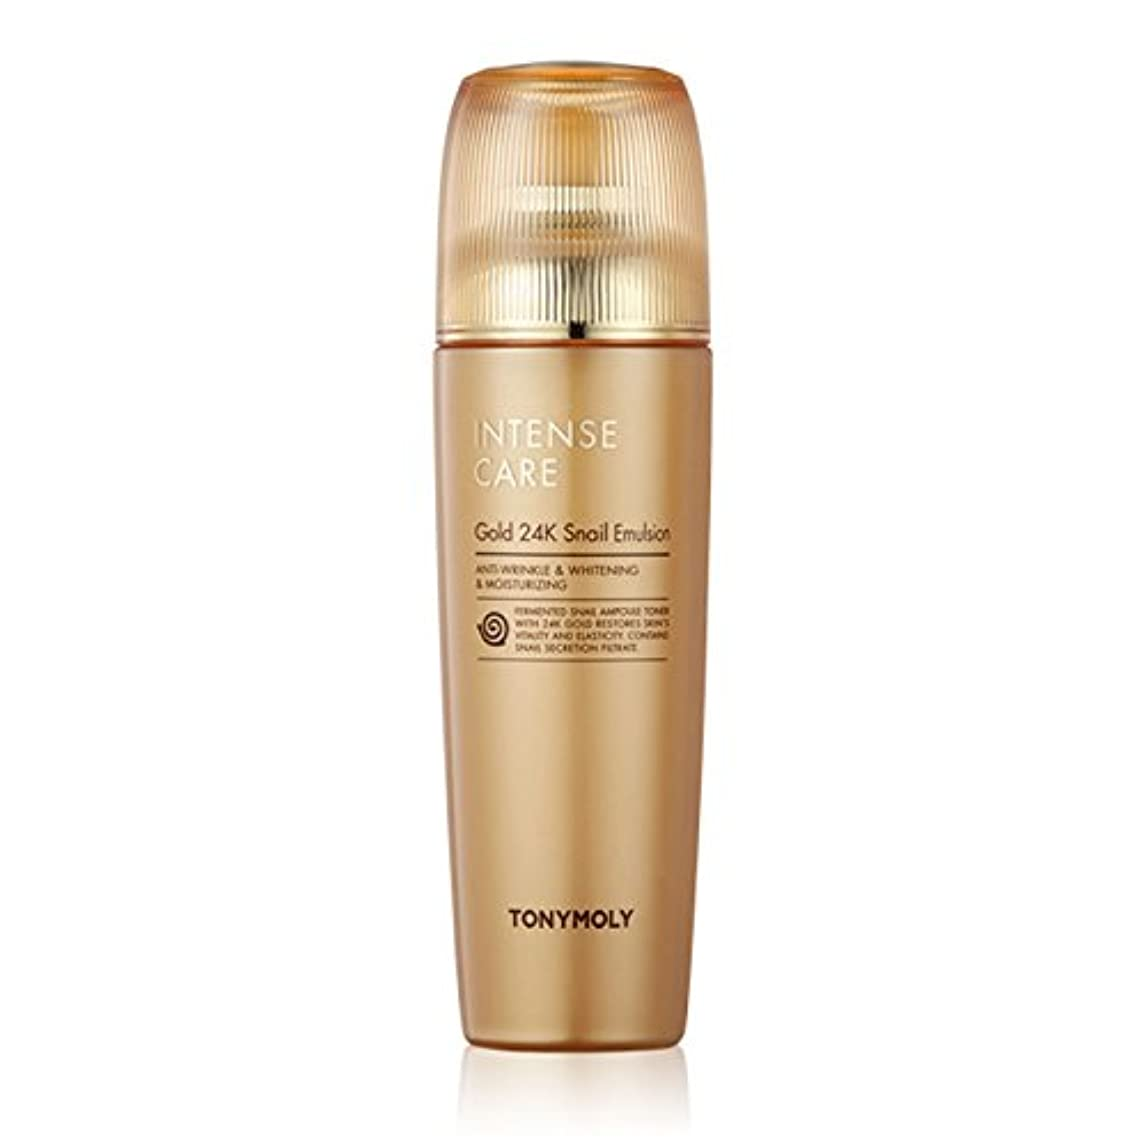 振る舞うピアノクラブTONYMOLY Intense Care Gold 24K Snail Emulsion 140ml